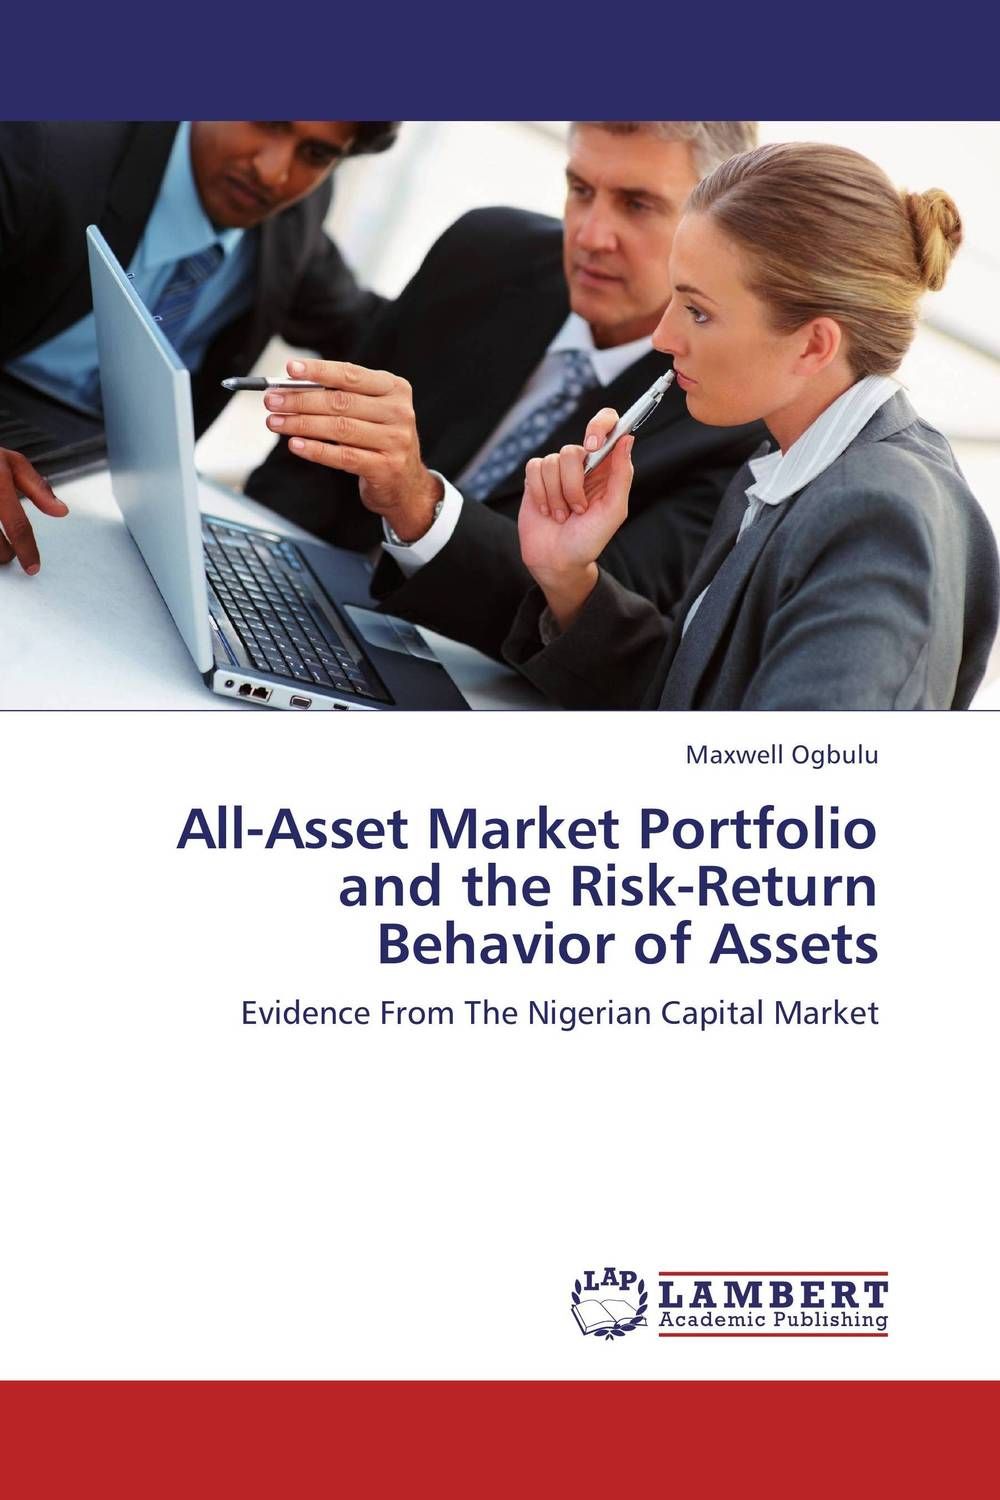 All-Asset Market Portfolio and the Risk-Return Behavior of Assets christian szylar handbook of market risk